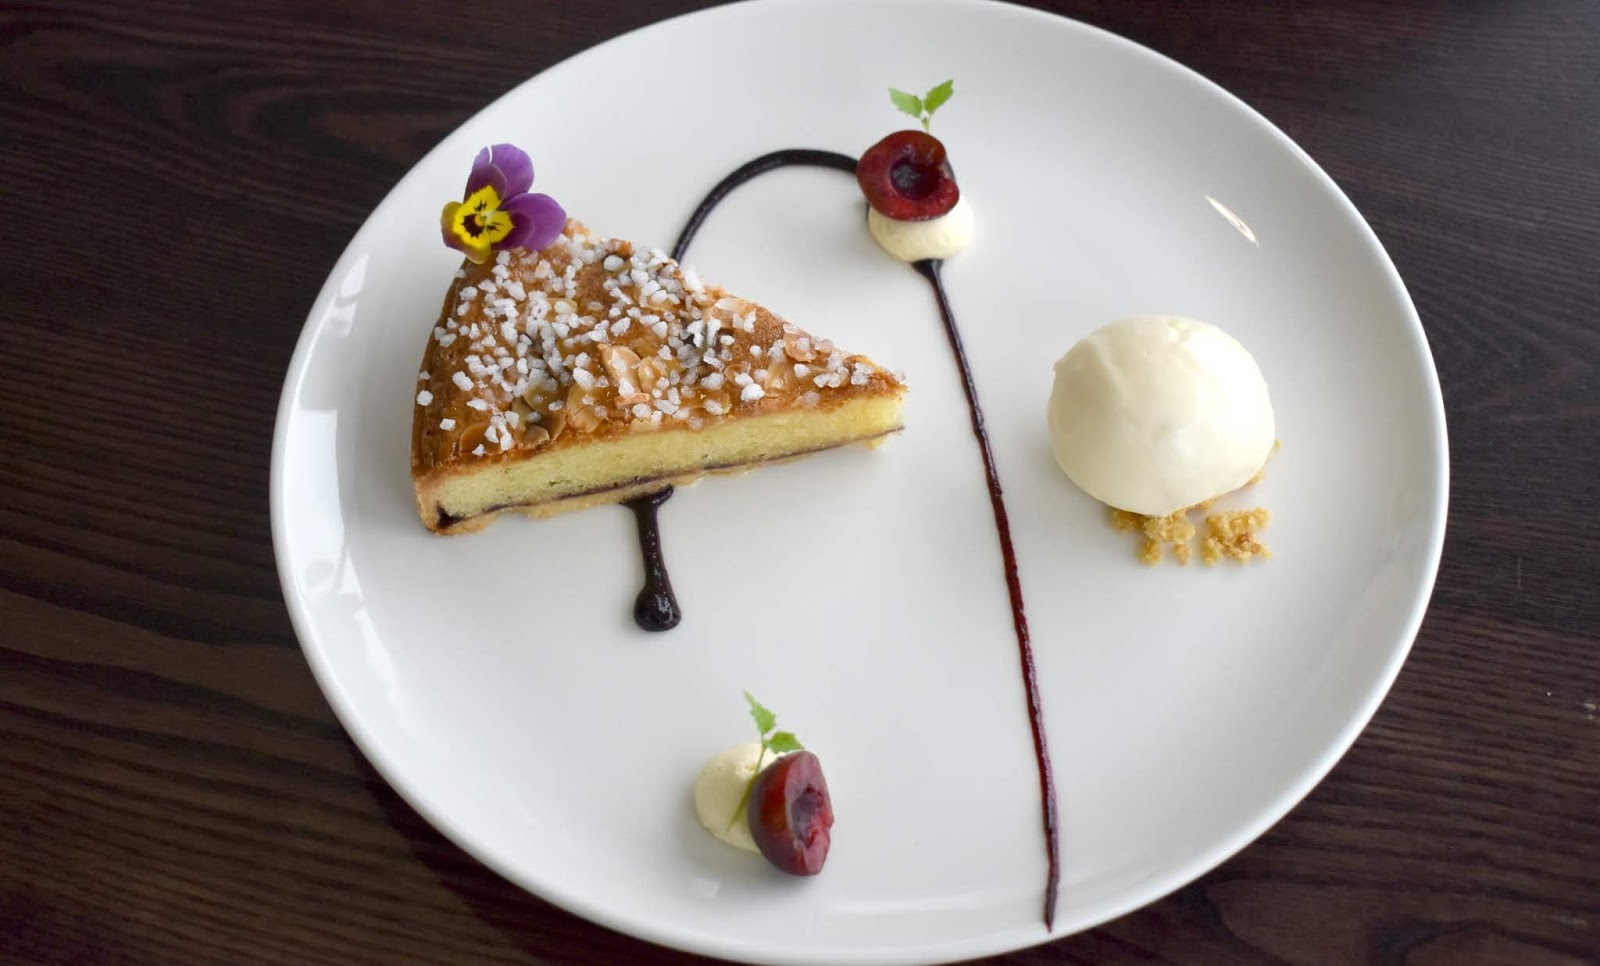 1910 at Spanish City Whitley Bay - Cherry and Almond Tart